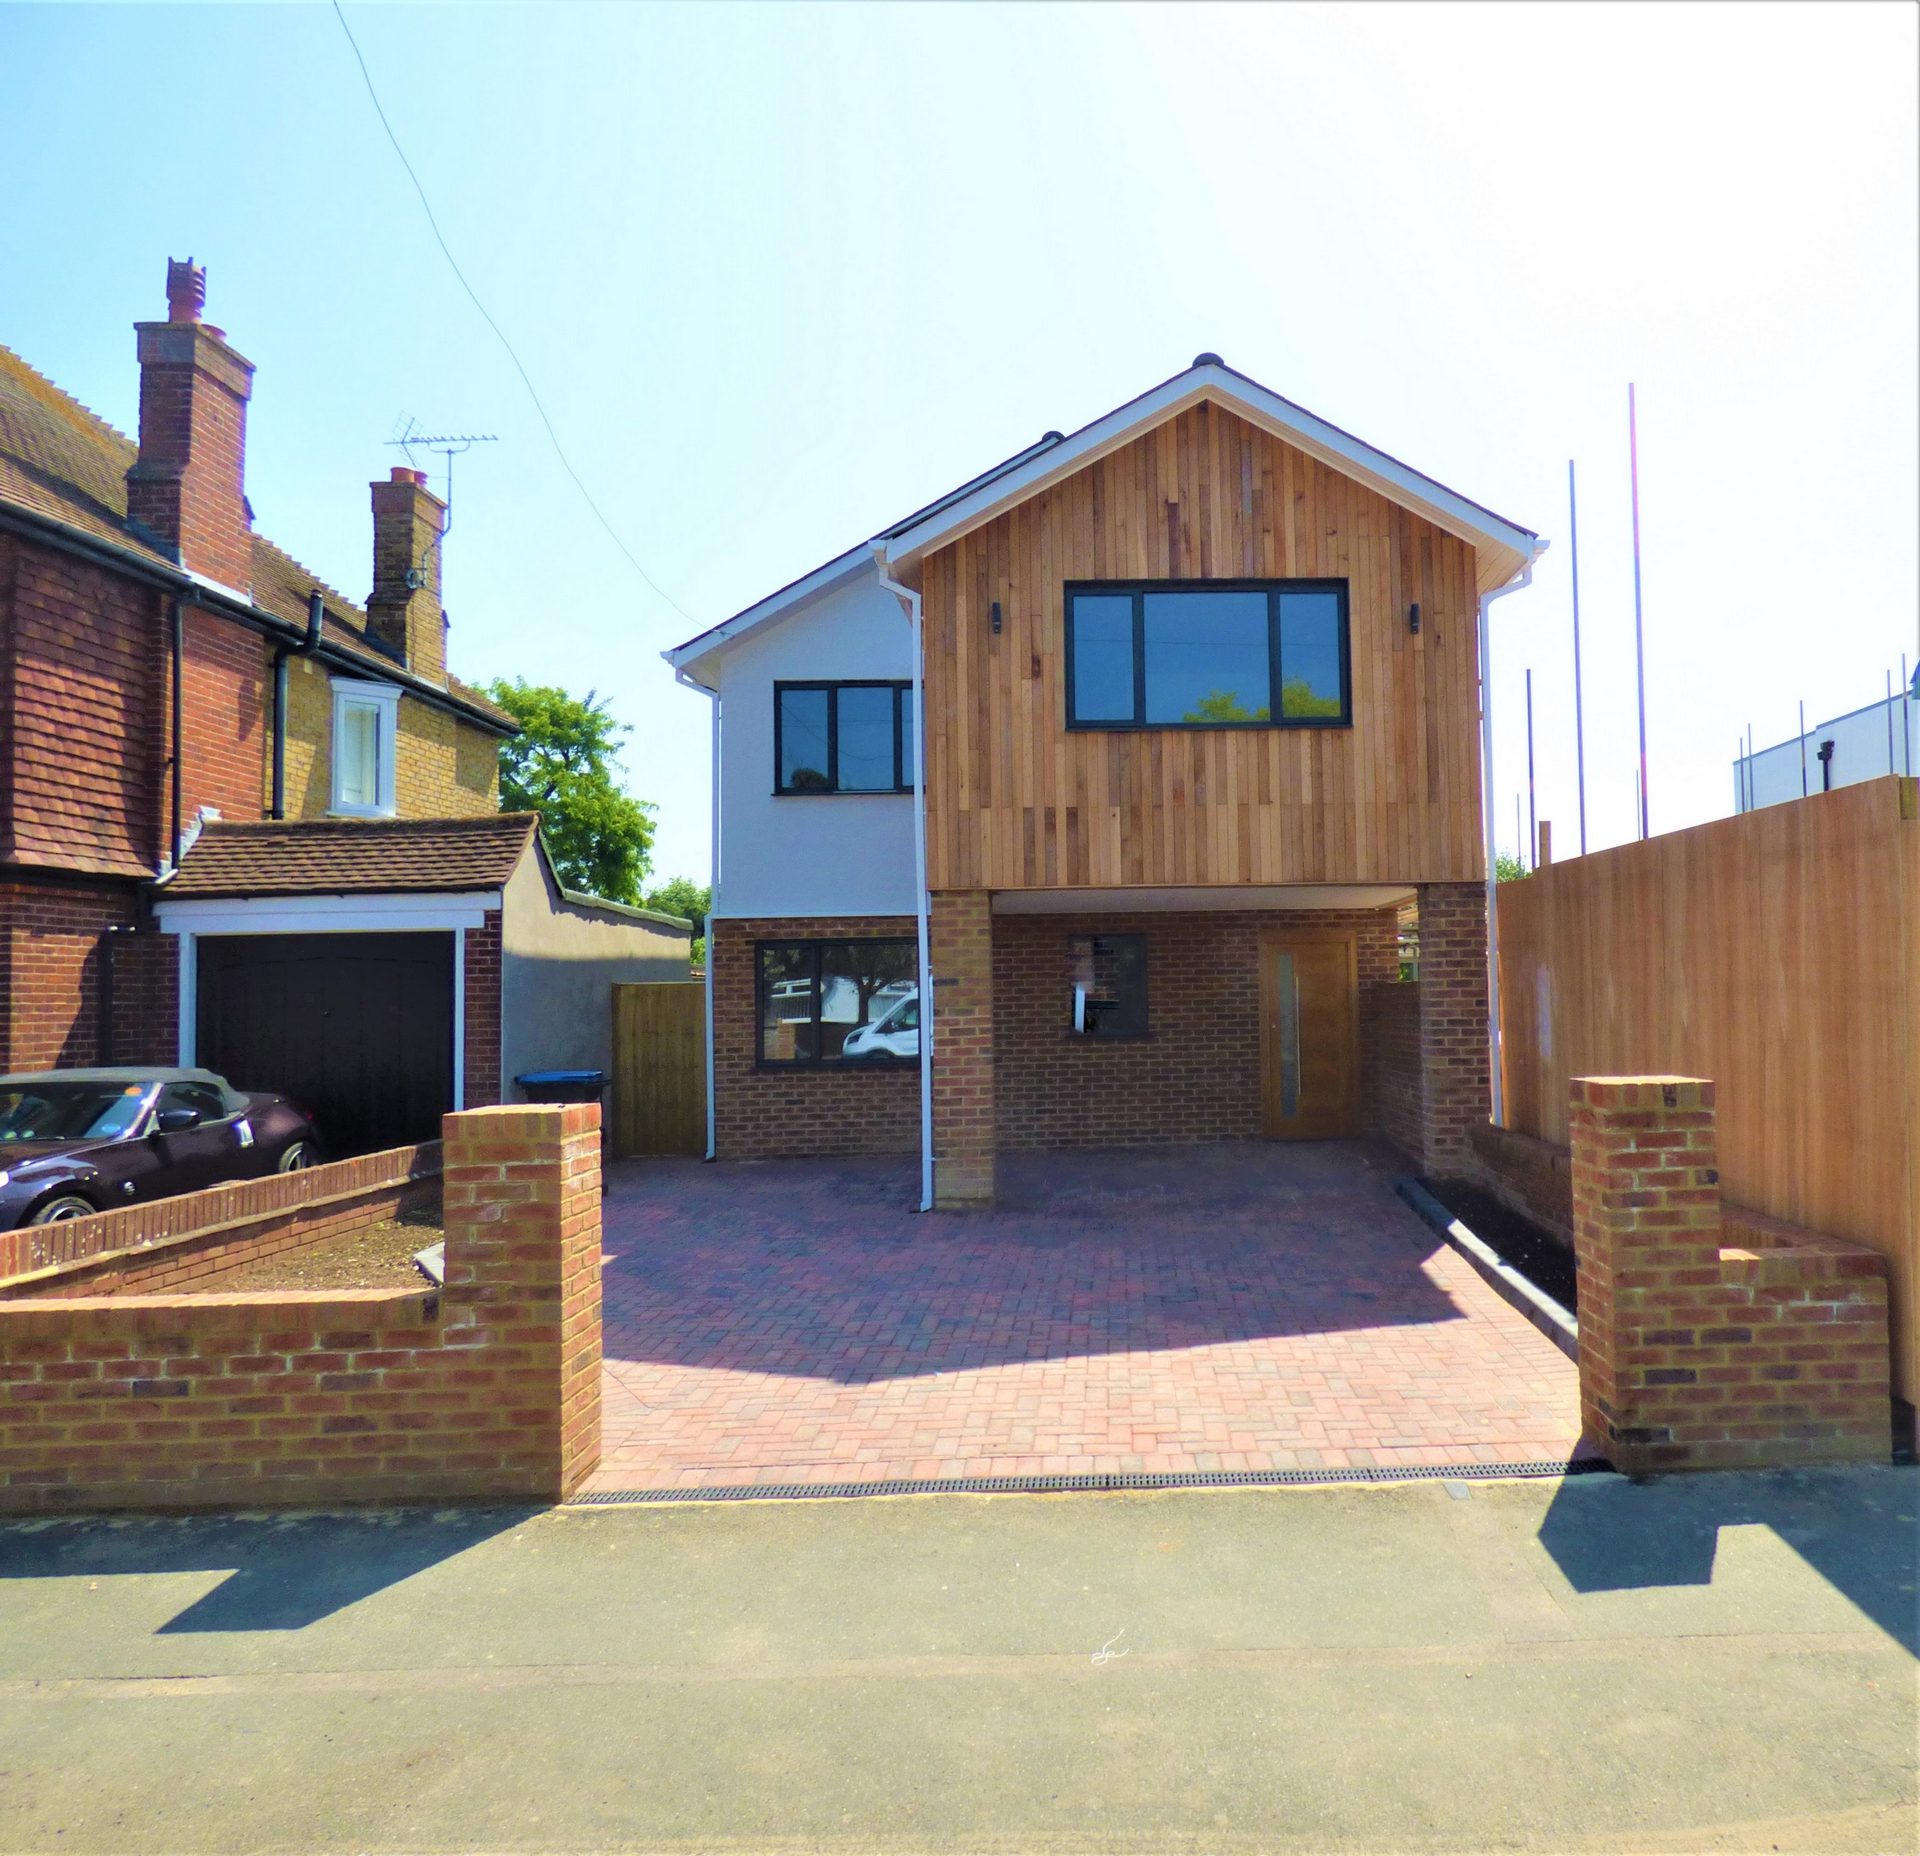 4 bed detached house for sale in Gladstone Road, Broadstairs, CT10